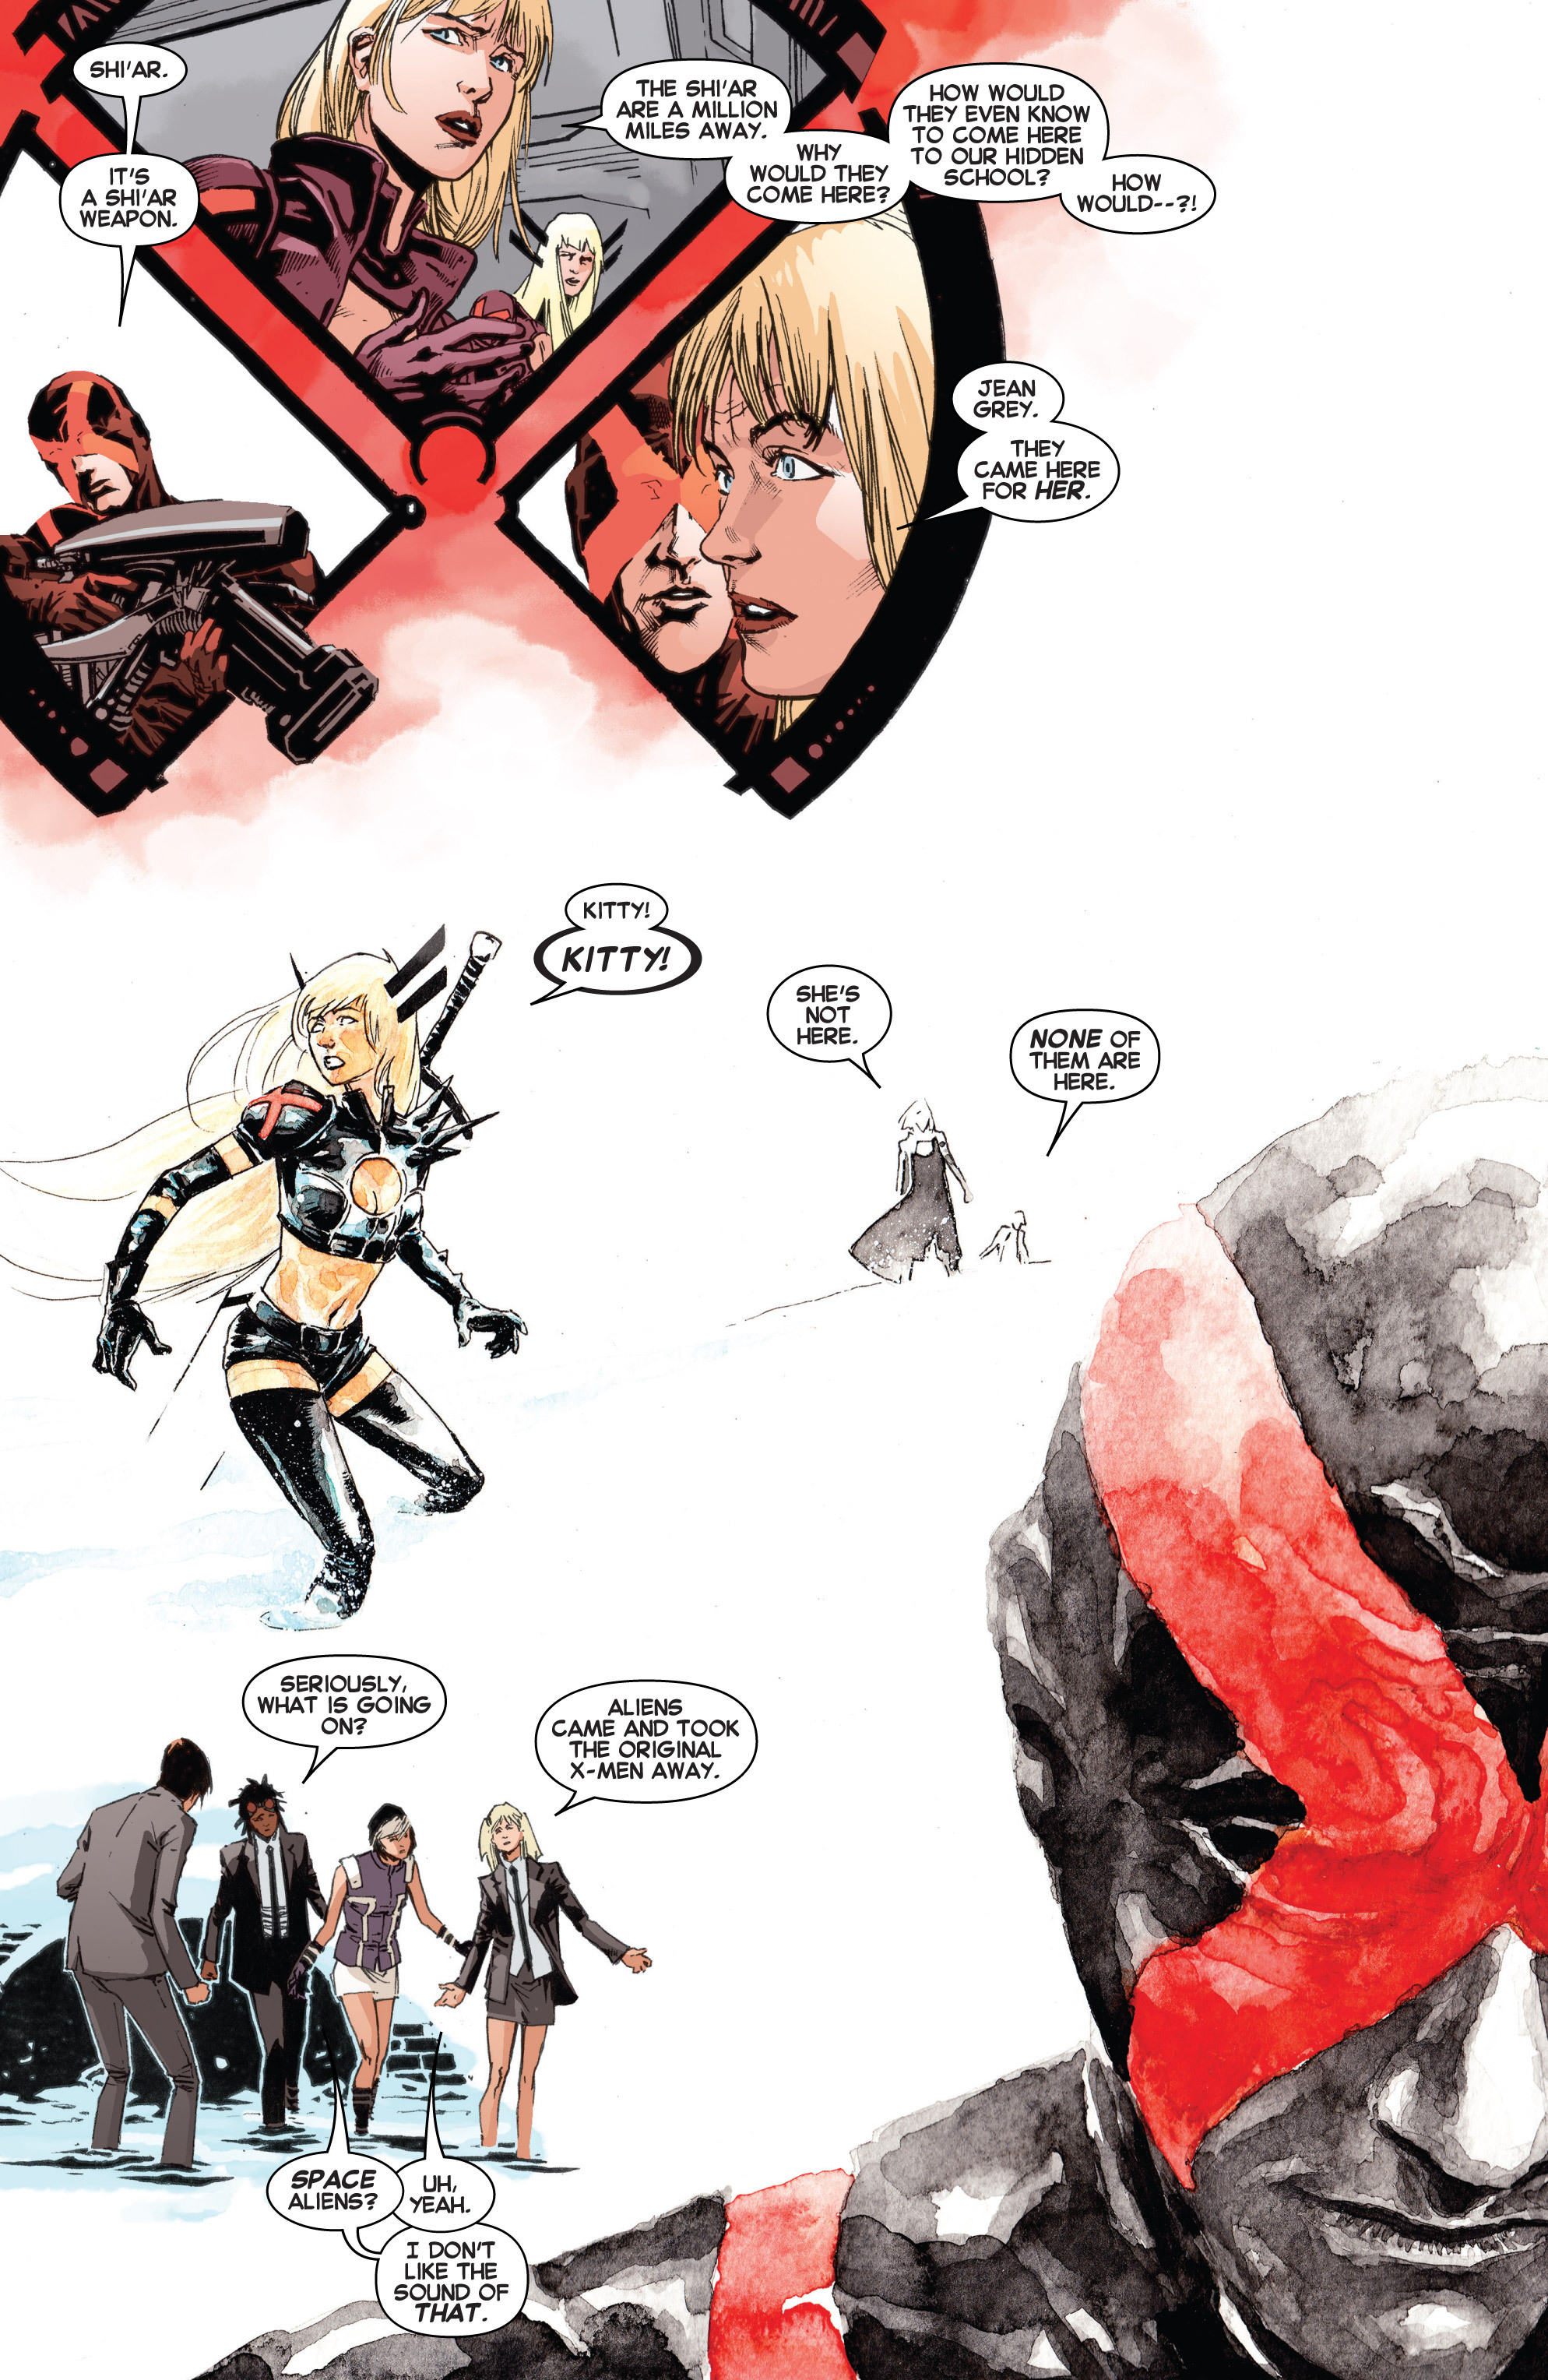 Read online Uncanny X-Men (2013) comic -  Issue # _TPB 3 - The Good, The Bad, The Inhuman - 89